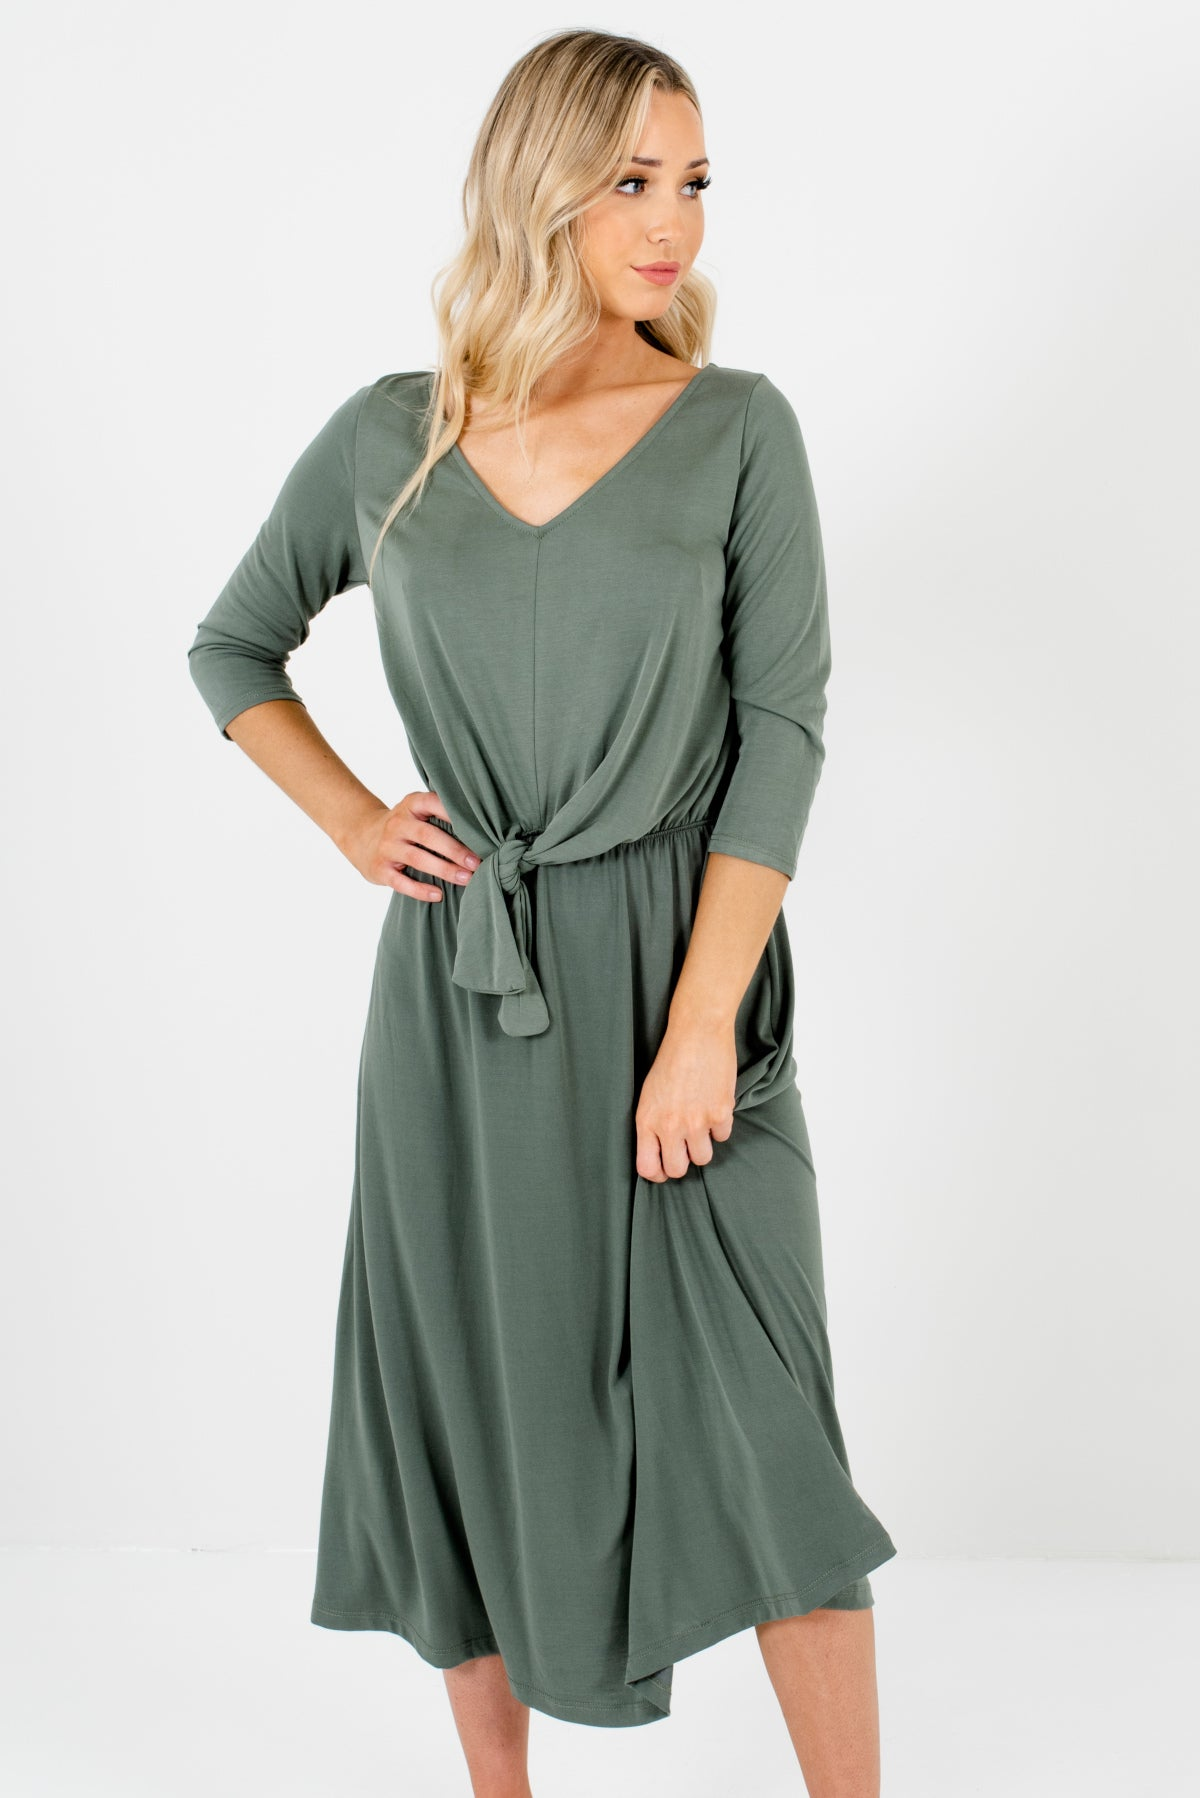 Olive Green Tie Front Knot Detailed Boutique Midi Dresses for Women